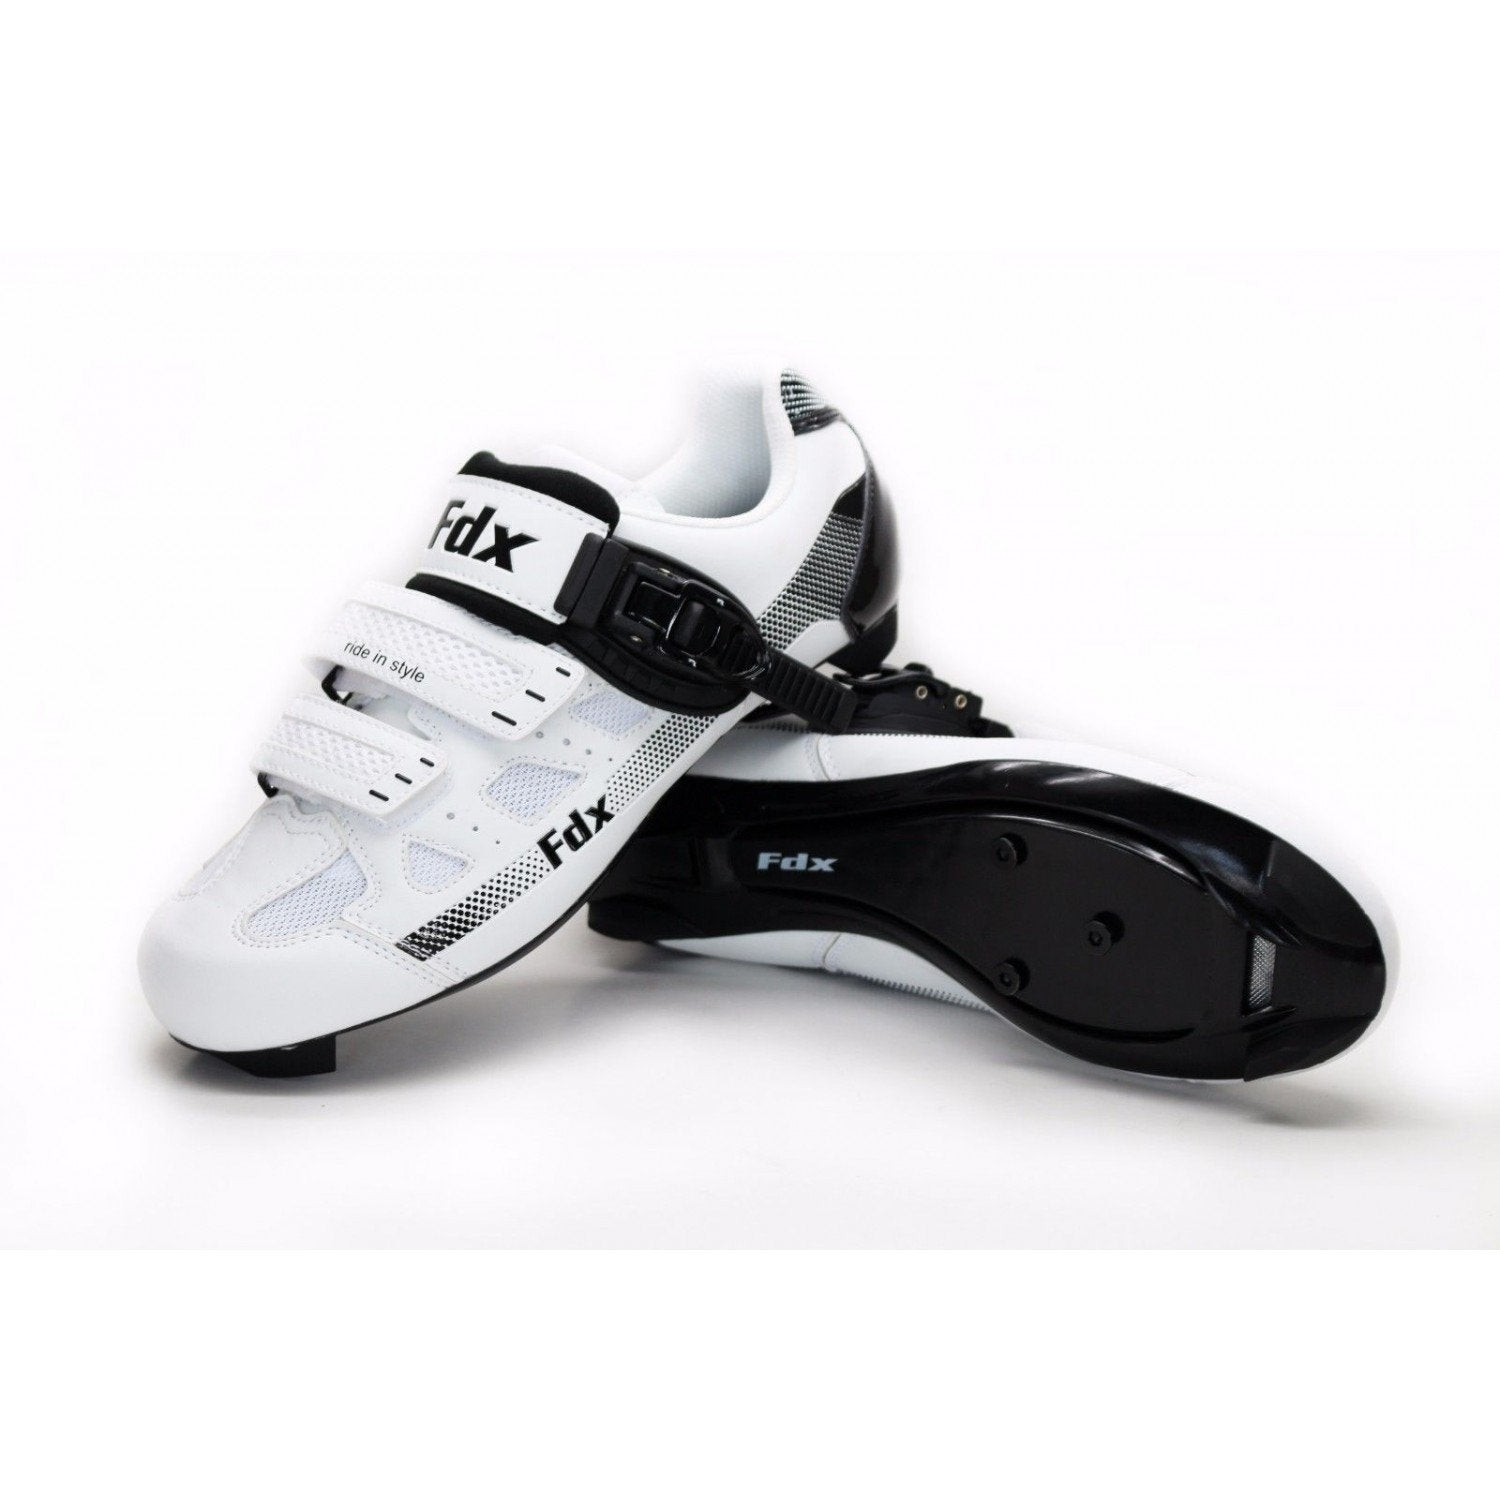 Fdx HY White Cycling Shoes